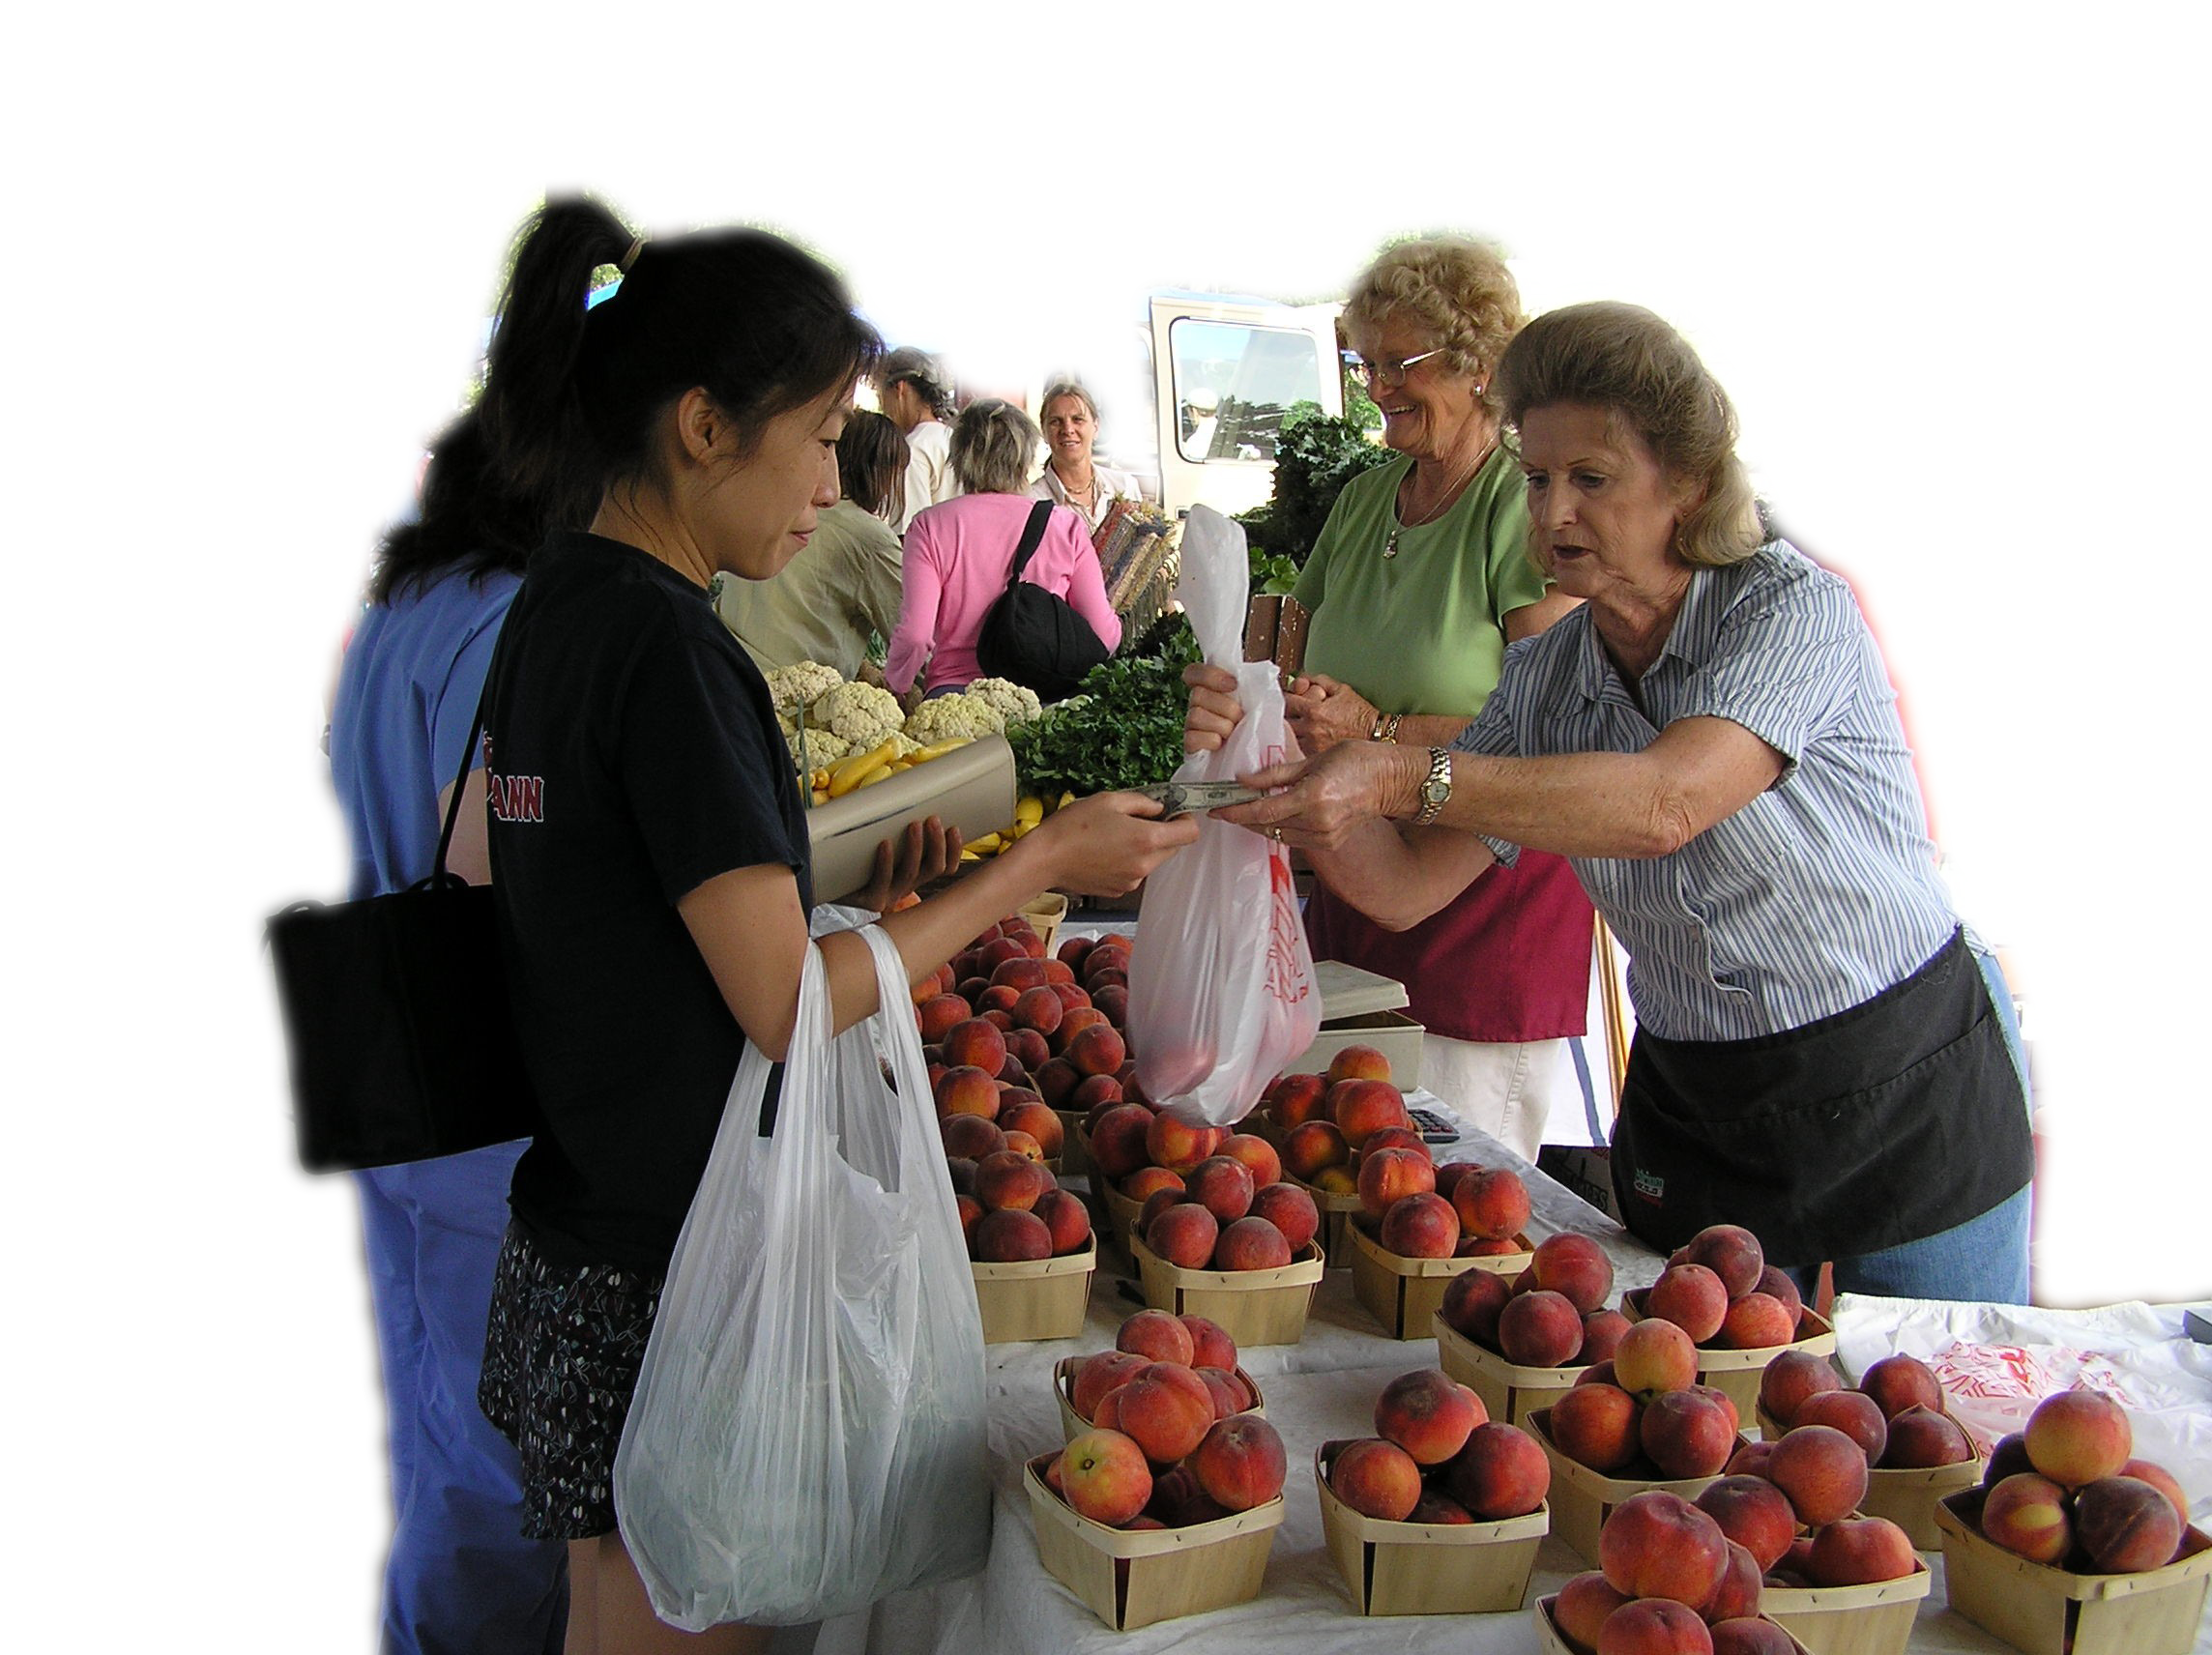 Street Markets People Cutout People Png Photoshop Resources